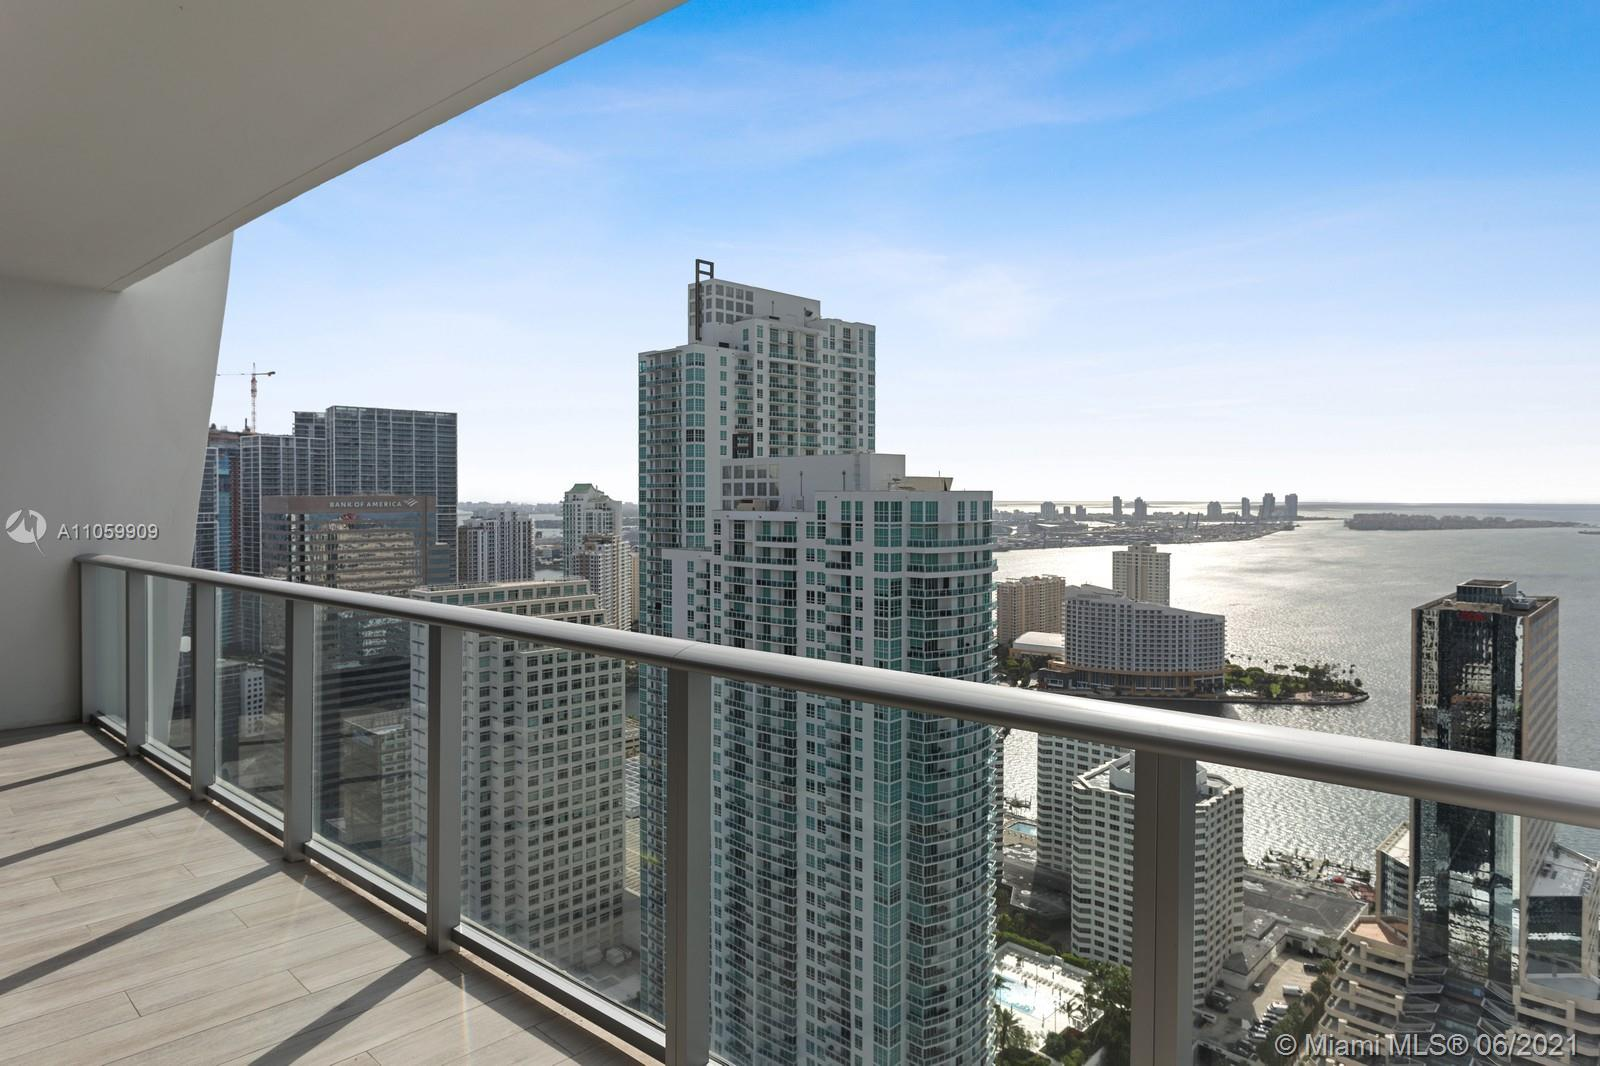 BEST PRICED UNIT AT 1010 Brickell! Beautifully upgraded spacious 2 bed 3 full bath + den. Murphy bed already installed. Convertible office to guest room. Enclosed den with a full bathroom and closet. Modern floors. Split floor plan. Step into the dining room from a private elevator. Enjoy amazing Views of the Bay, south beach and Port of Miami from the 2 private balconies.. Walking distance to Brickell City Centre and restaurants. 5-star amenities. Running track, indoor and rooftop pool, sauna, jacuzzi, kids club, basketball court, racketball court. 1 parking space included. IT WON'T LAST!